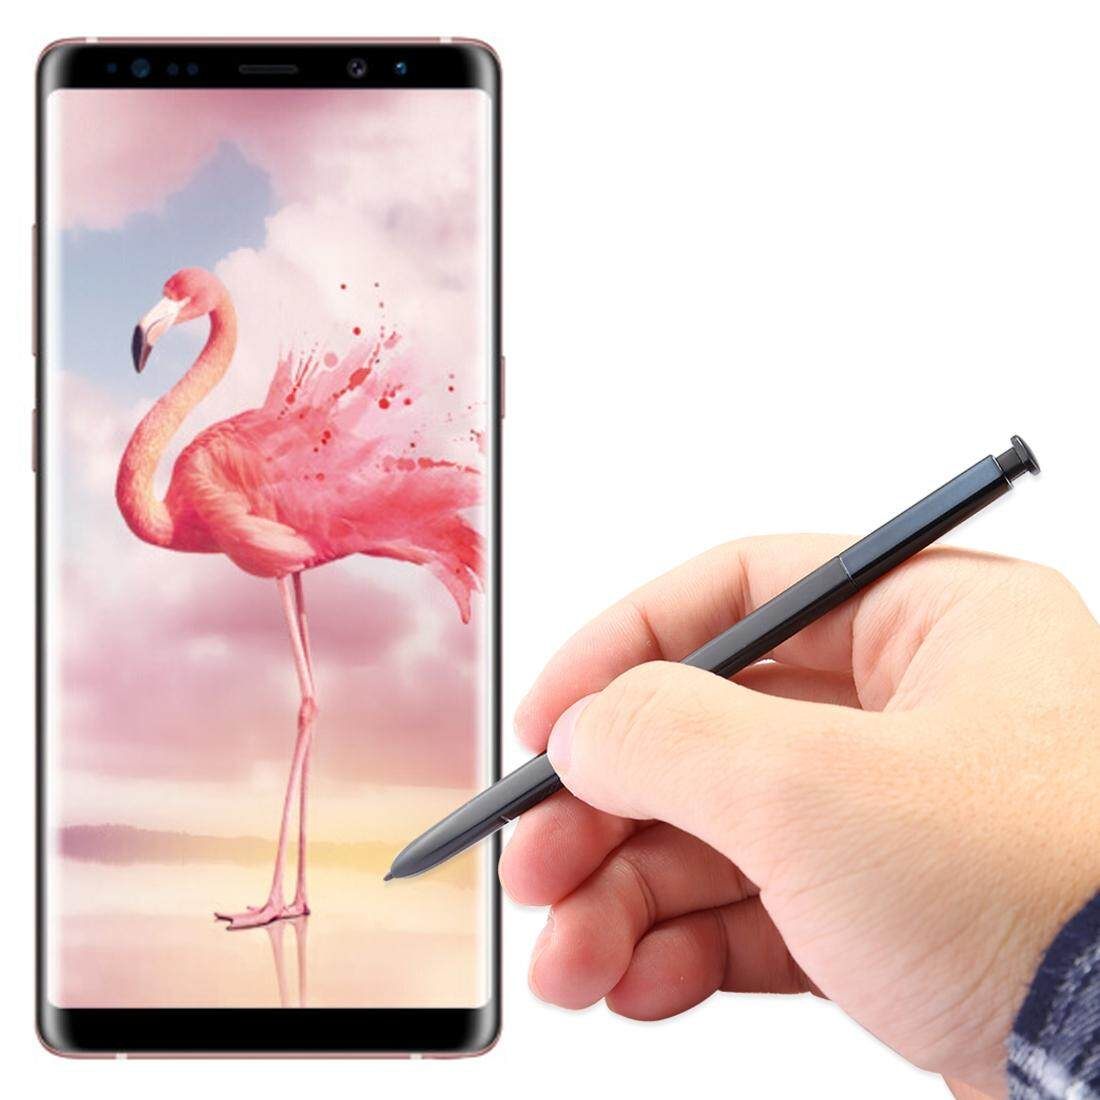 For Samsung Galaxy Note 8 / N9500 Touch Stylus S Pen(Black) - intl